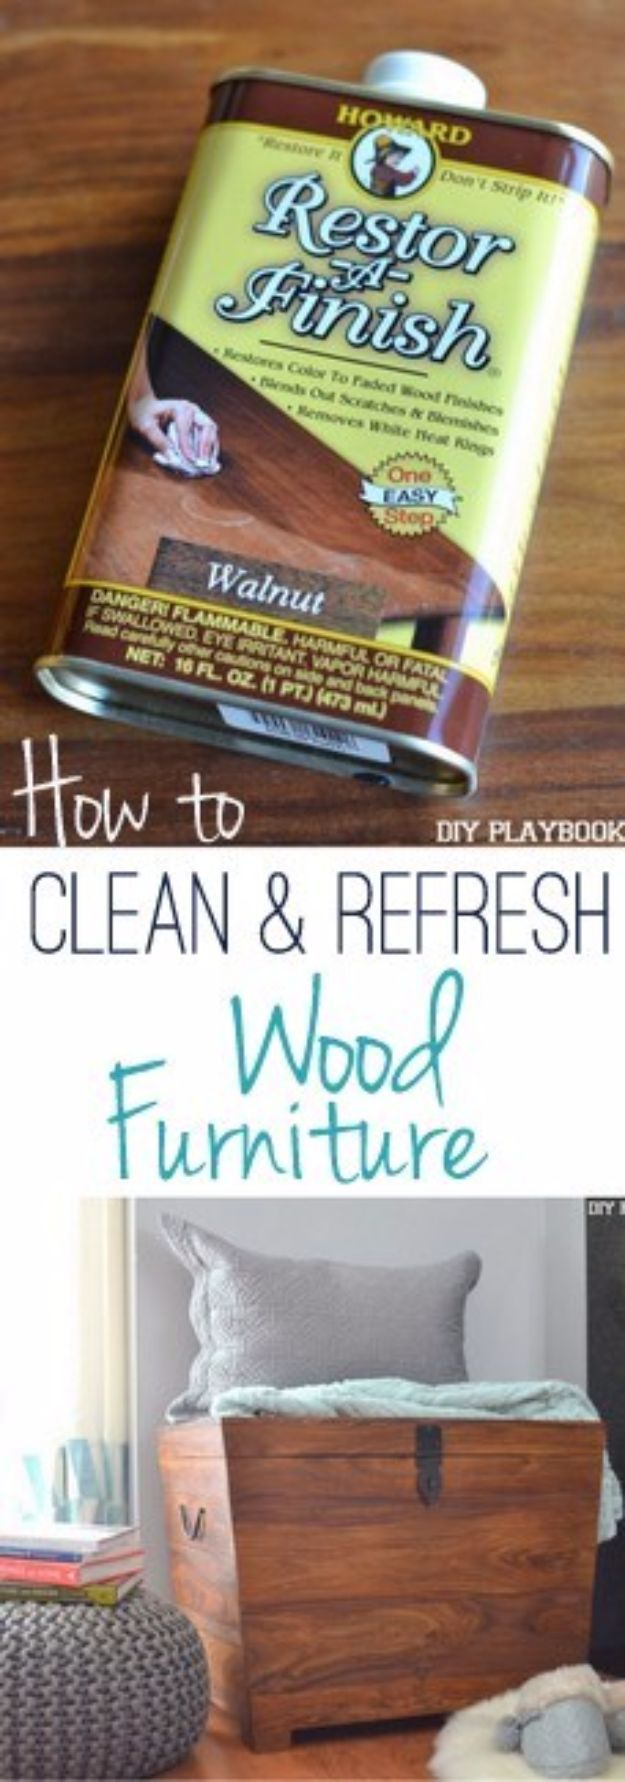 Cool Woodworking Tips - Clean And Refresh Wood Furniture - Easy Woodworking Ideas, Woodworking Tips and Tricks, Woodworking Tips For Beginners, Basic Guide For Woodworking - Refinishing Wood, Sanding and Staining, Cleaning Wood and Upcycling Pallets #woodworking